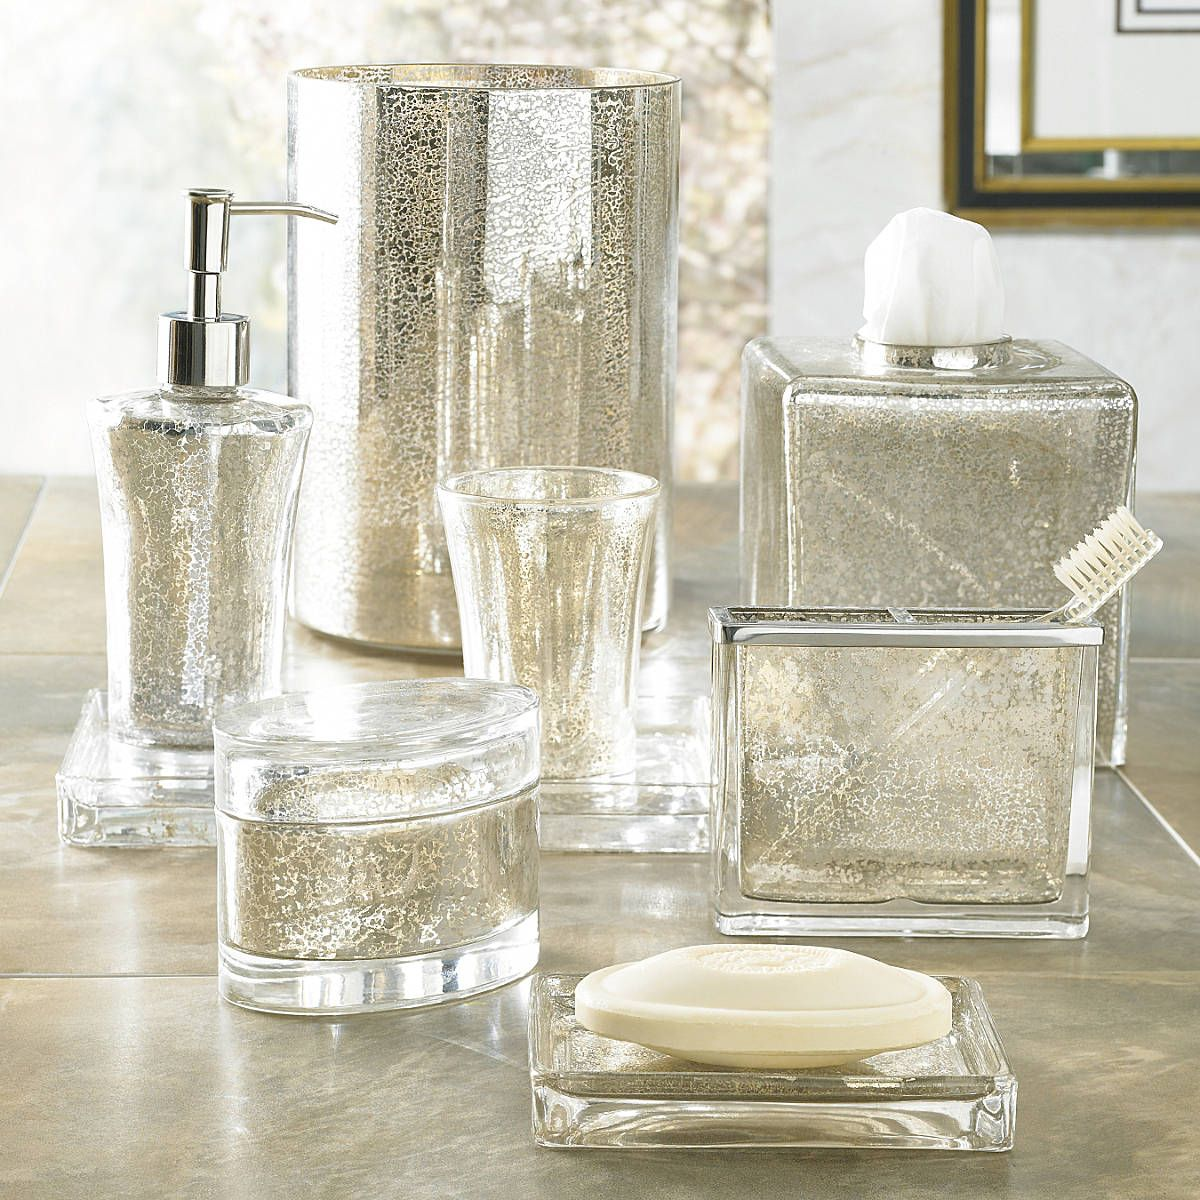 Luxury bath accessory sets vizcaya accessories by for Mosaic bath accessories